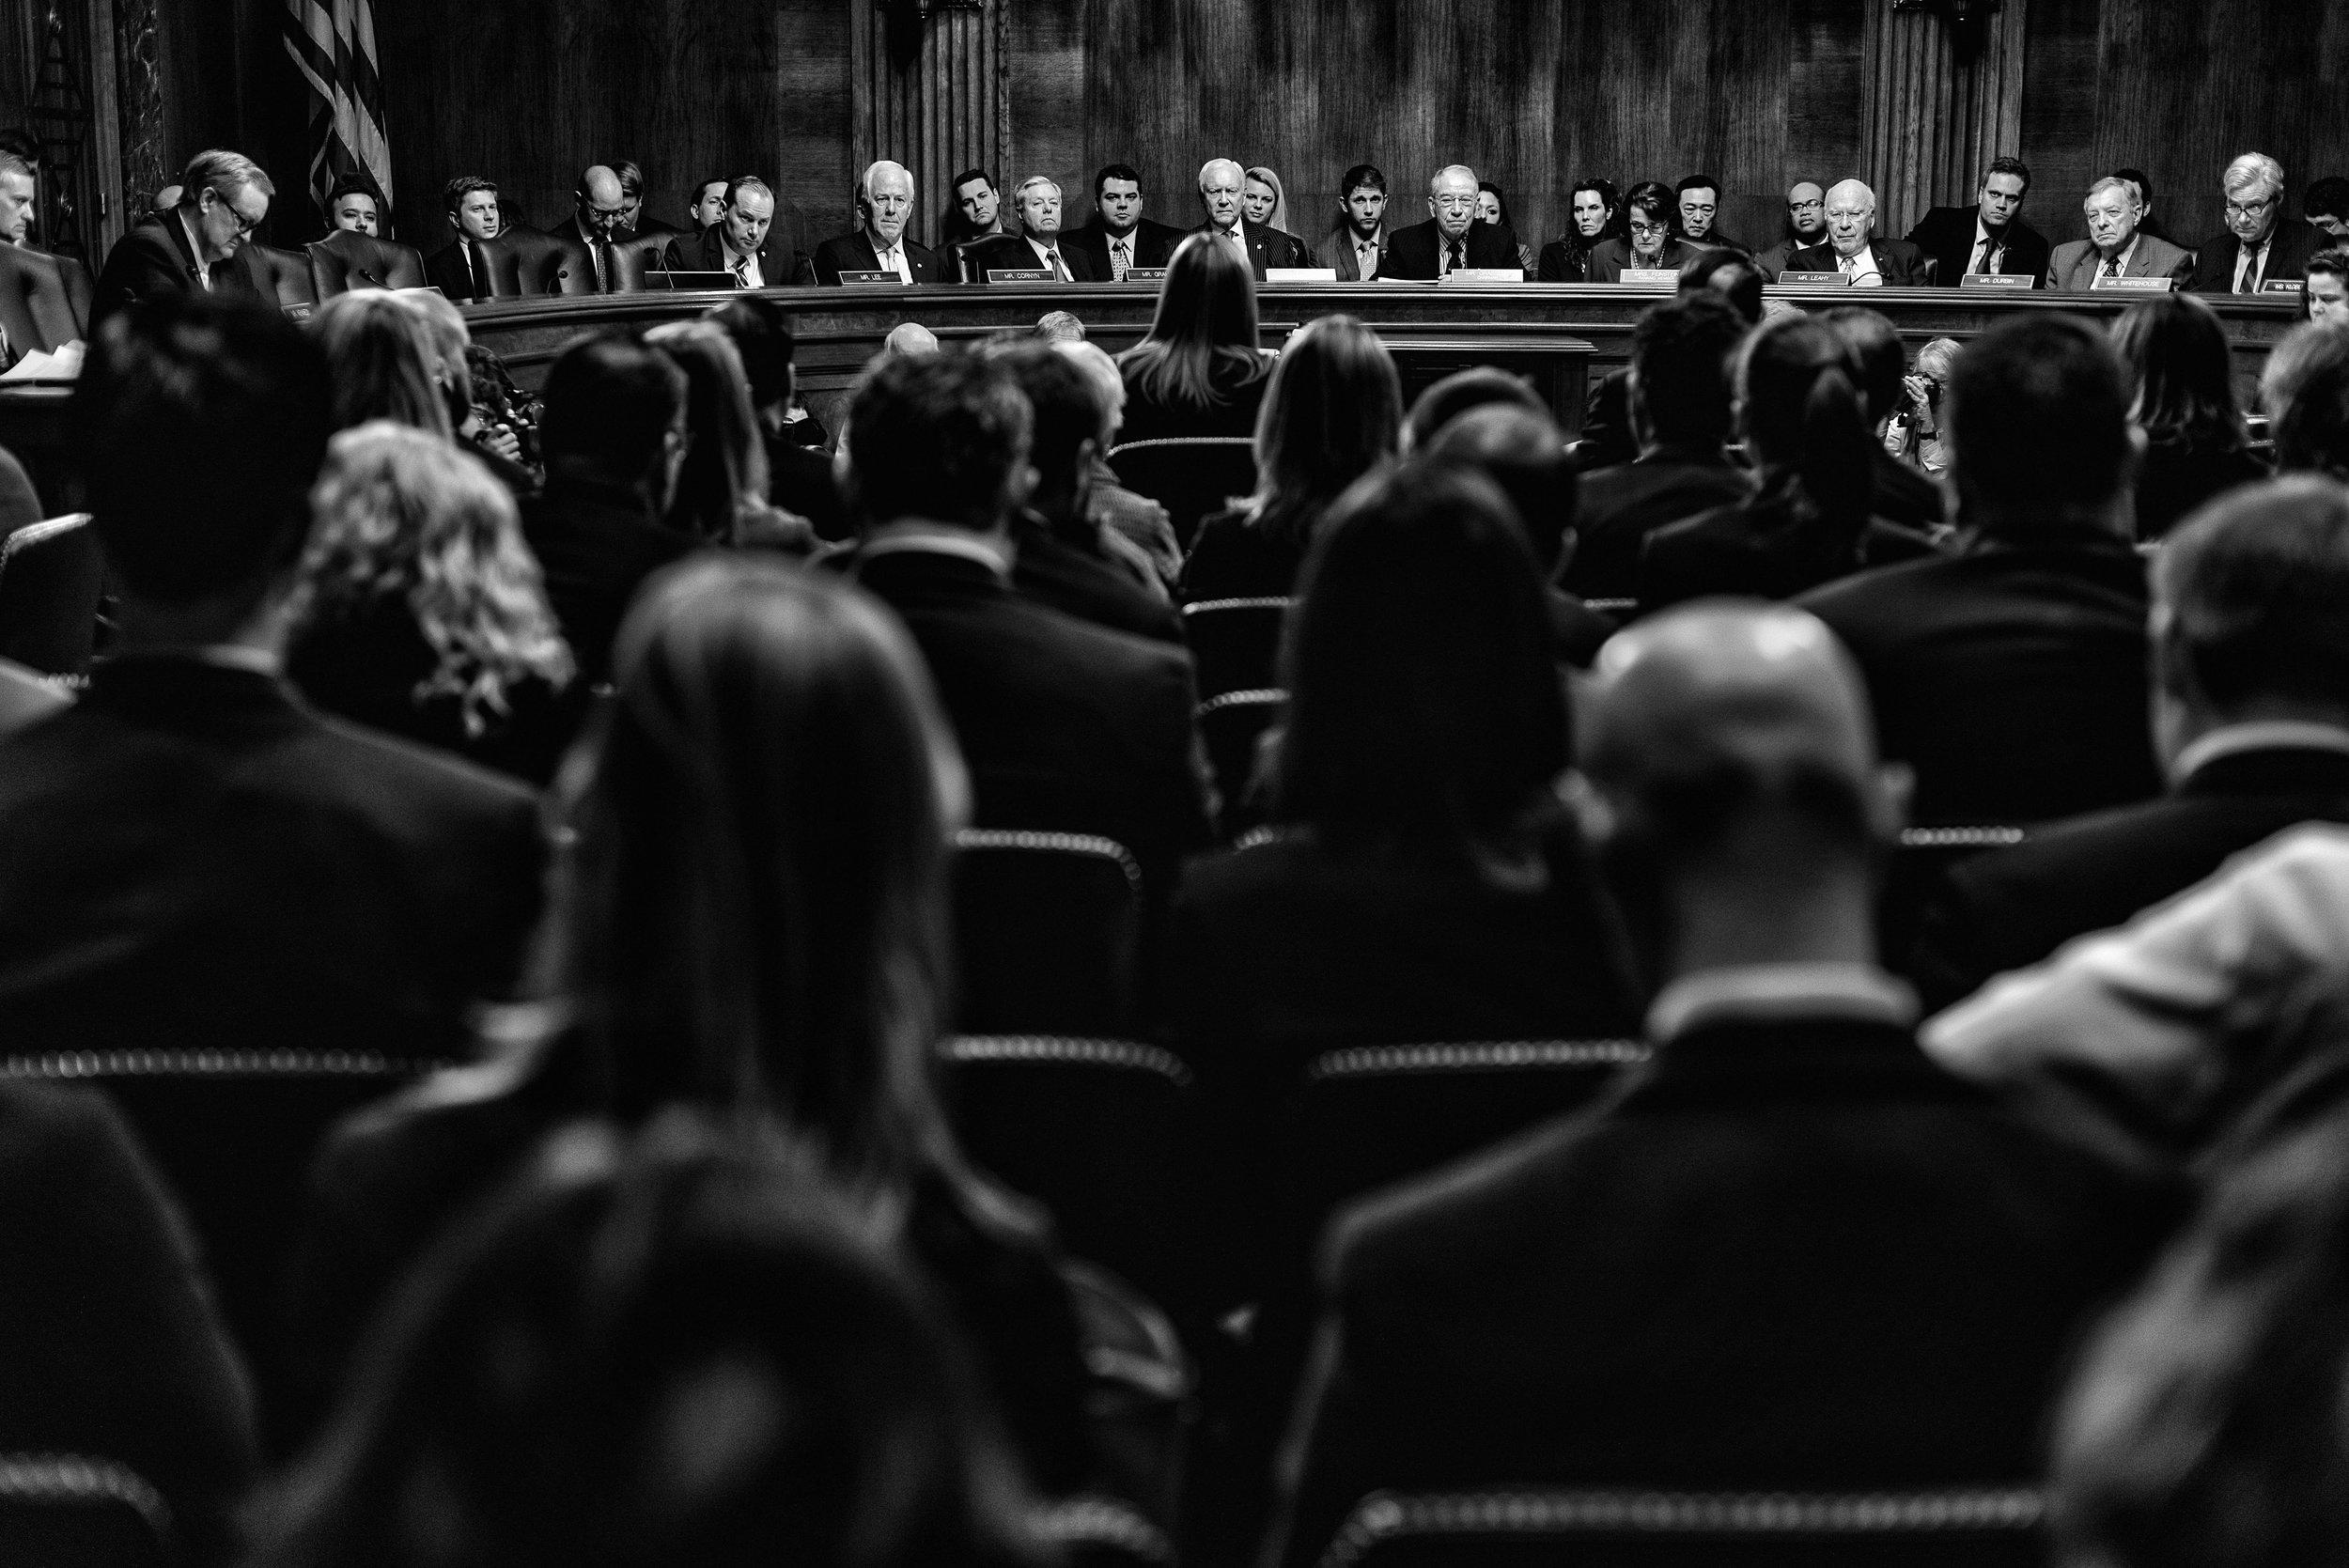 Day 47 : Rachel Brand testifies before the U.S. Senate Judiciary Committee on a hearing considering her to be Associate Attorney General, on March 7, 2017.